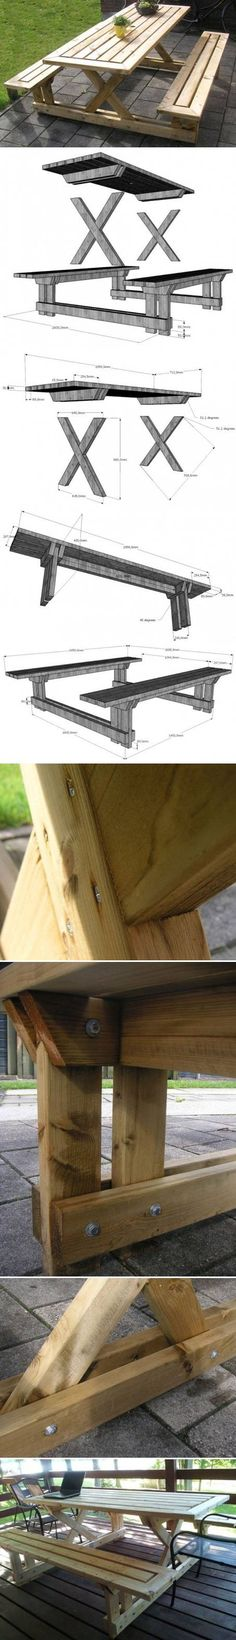 DIY Garden Bench & Table